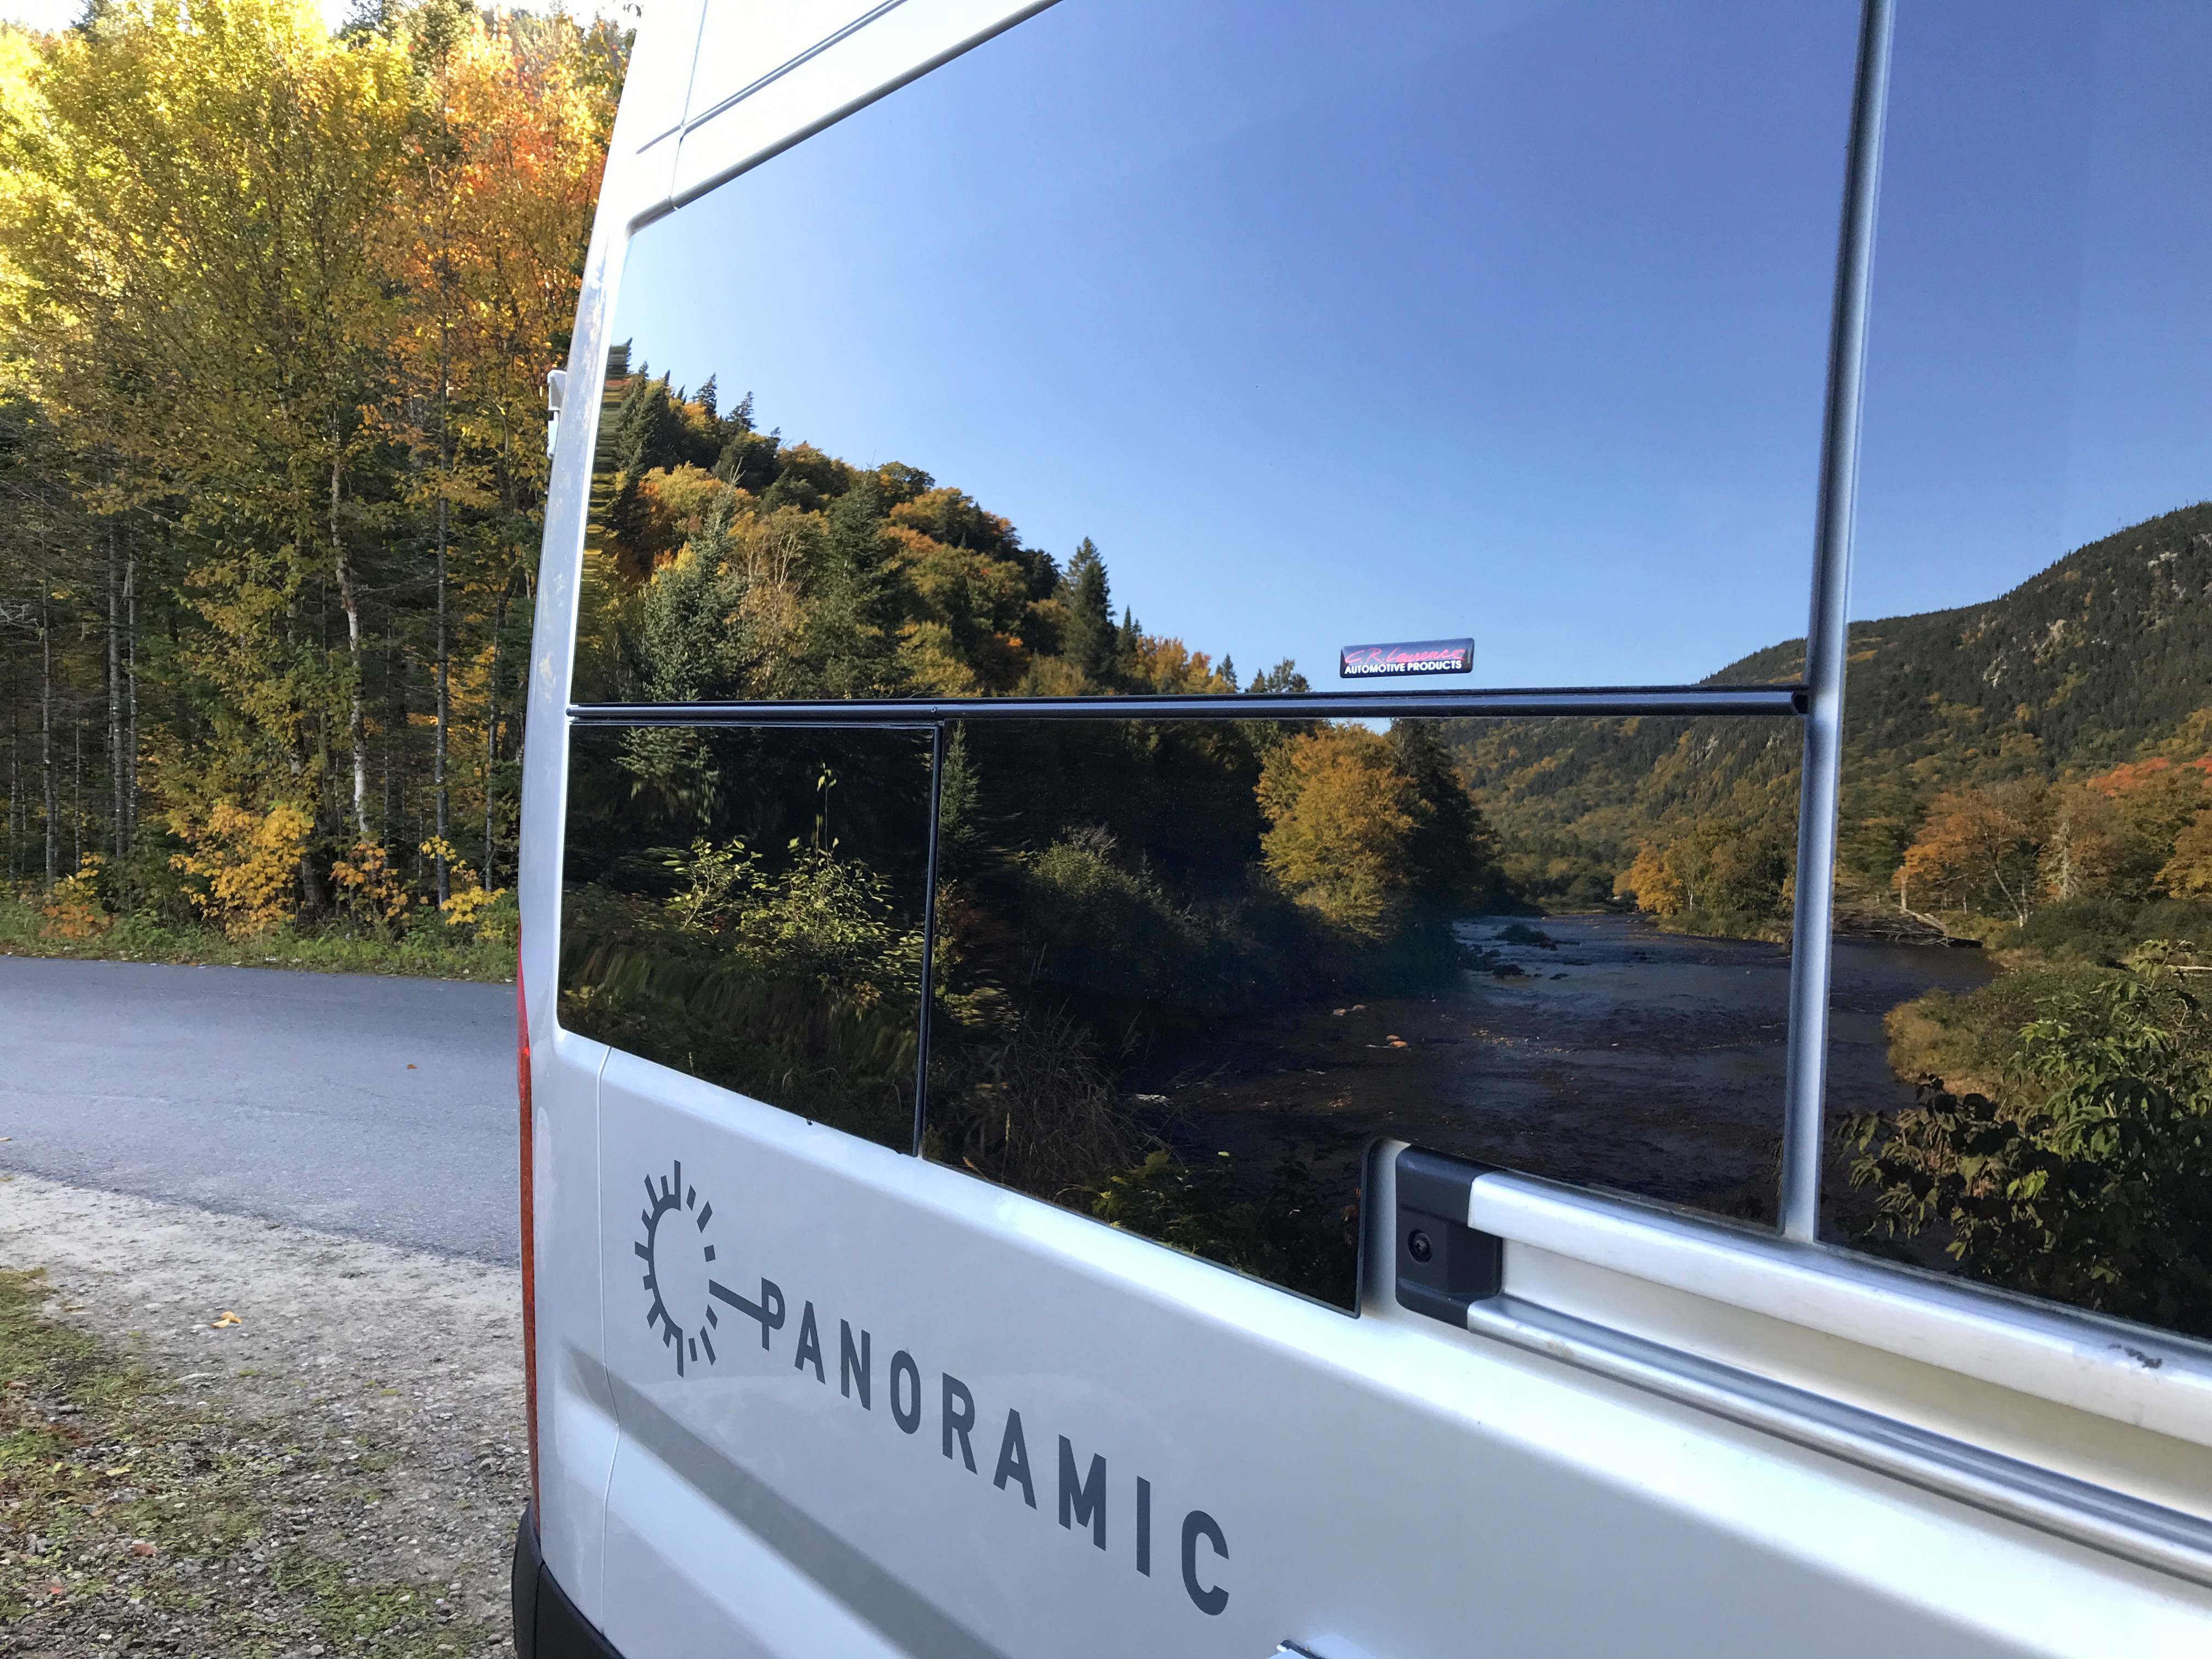 Panoramic RV - Owners - JV - 6